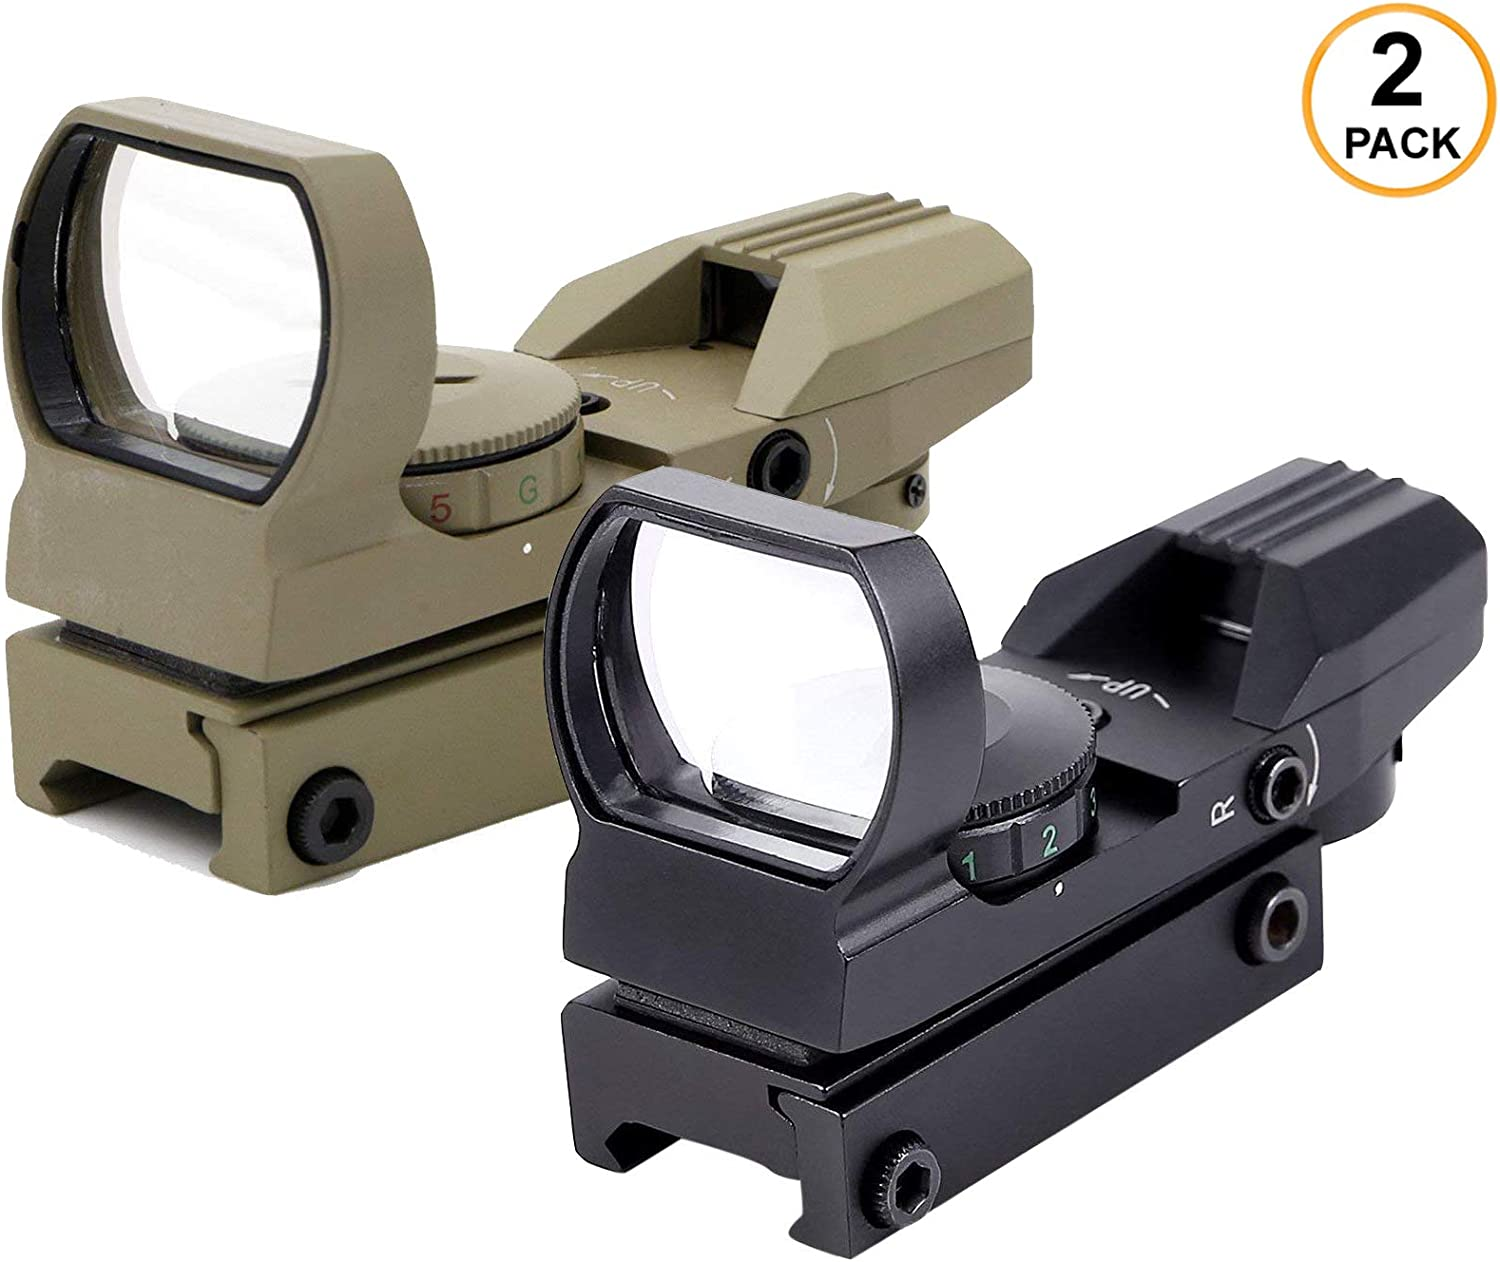 Top 10 Best Red Dot Sight Reviews in 2020 & Buying Guide 10